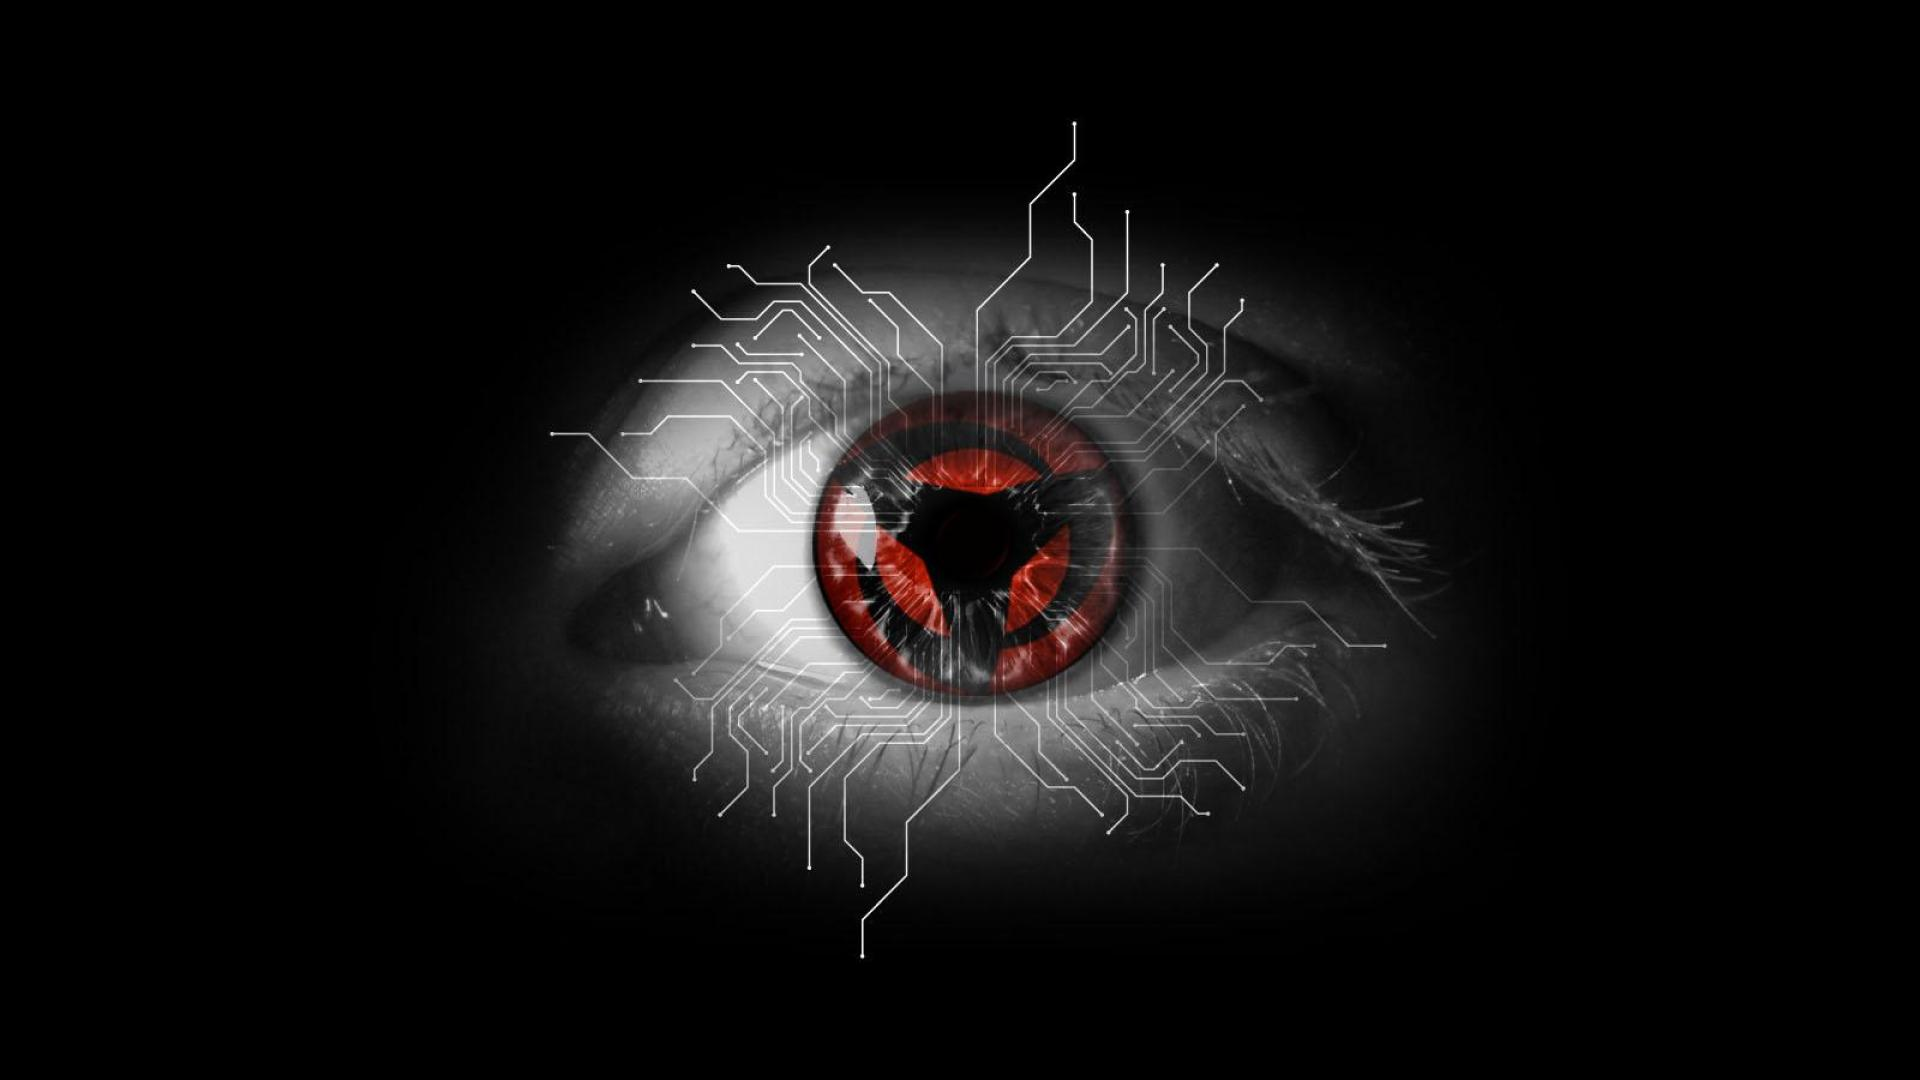 Sharingan wallpaper hd 1920x1080 wallpapersafari for Photo fond ecran hd